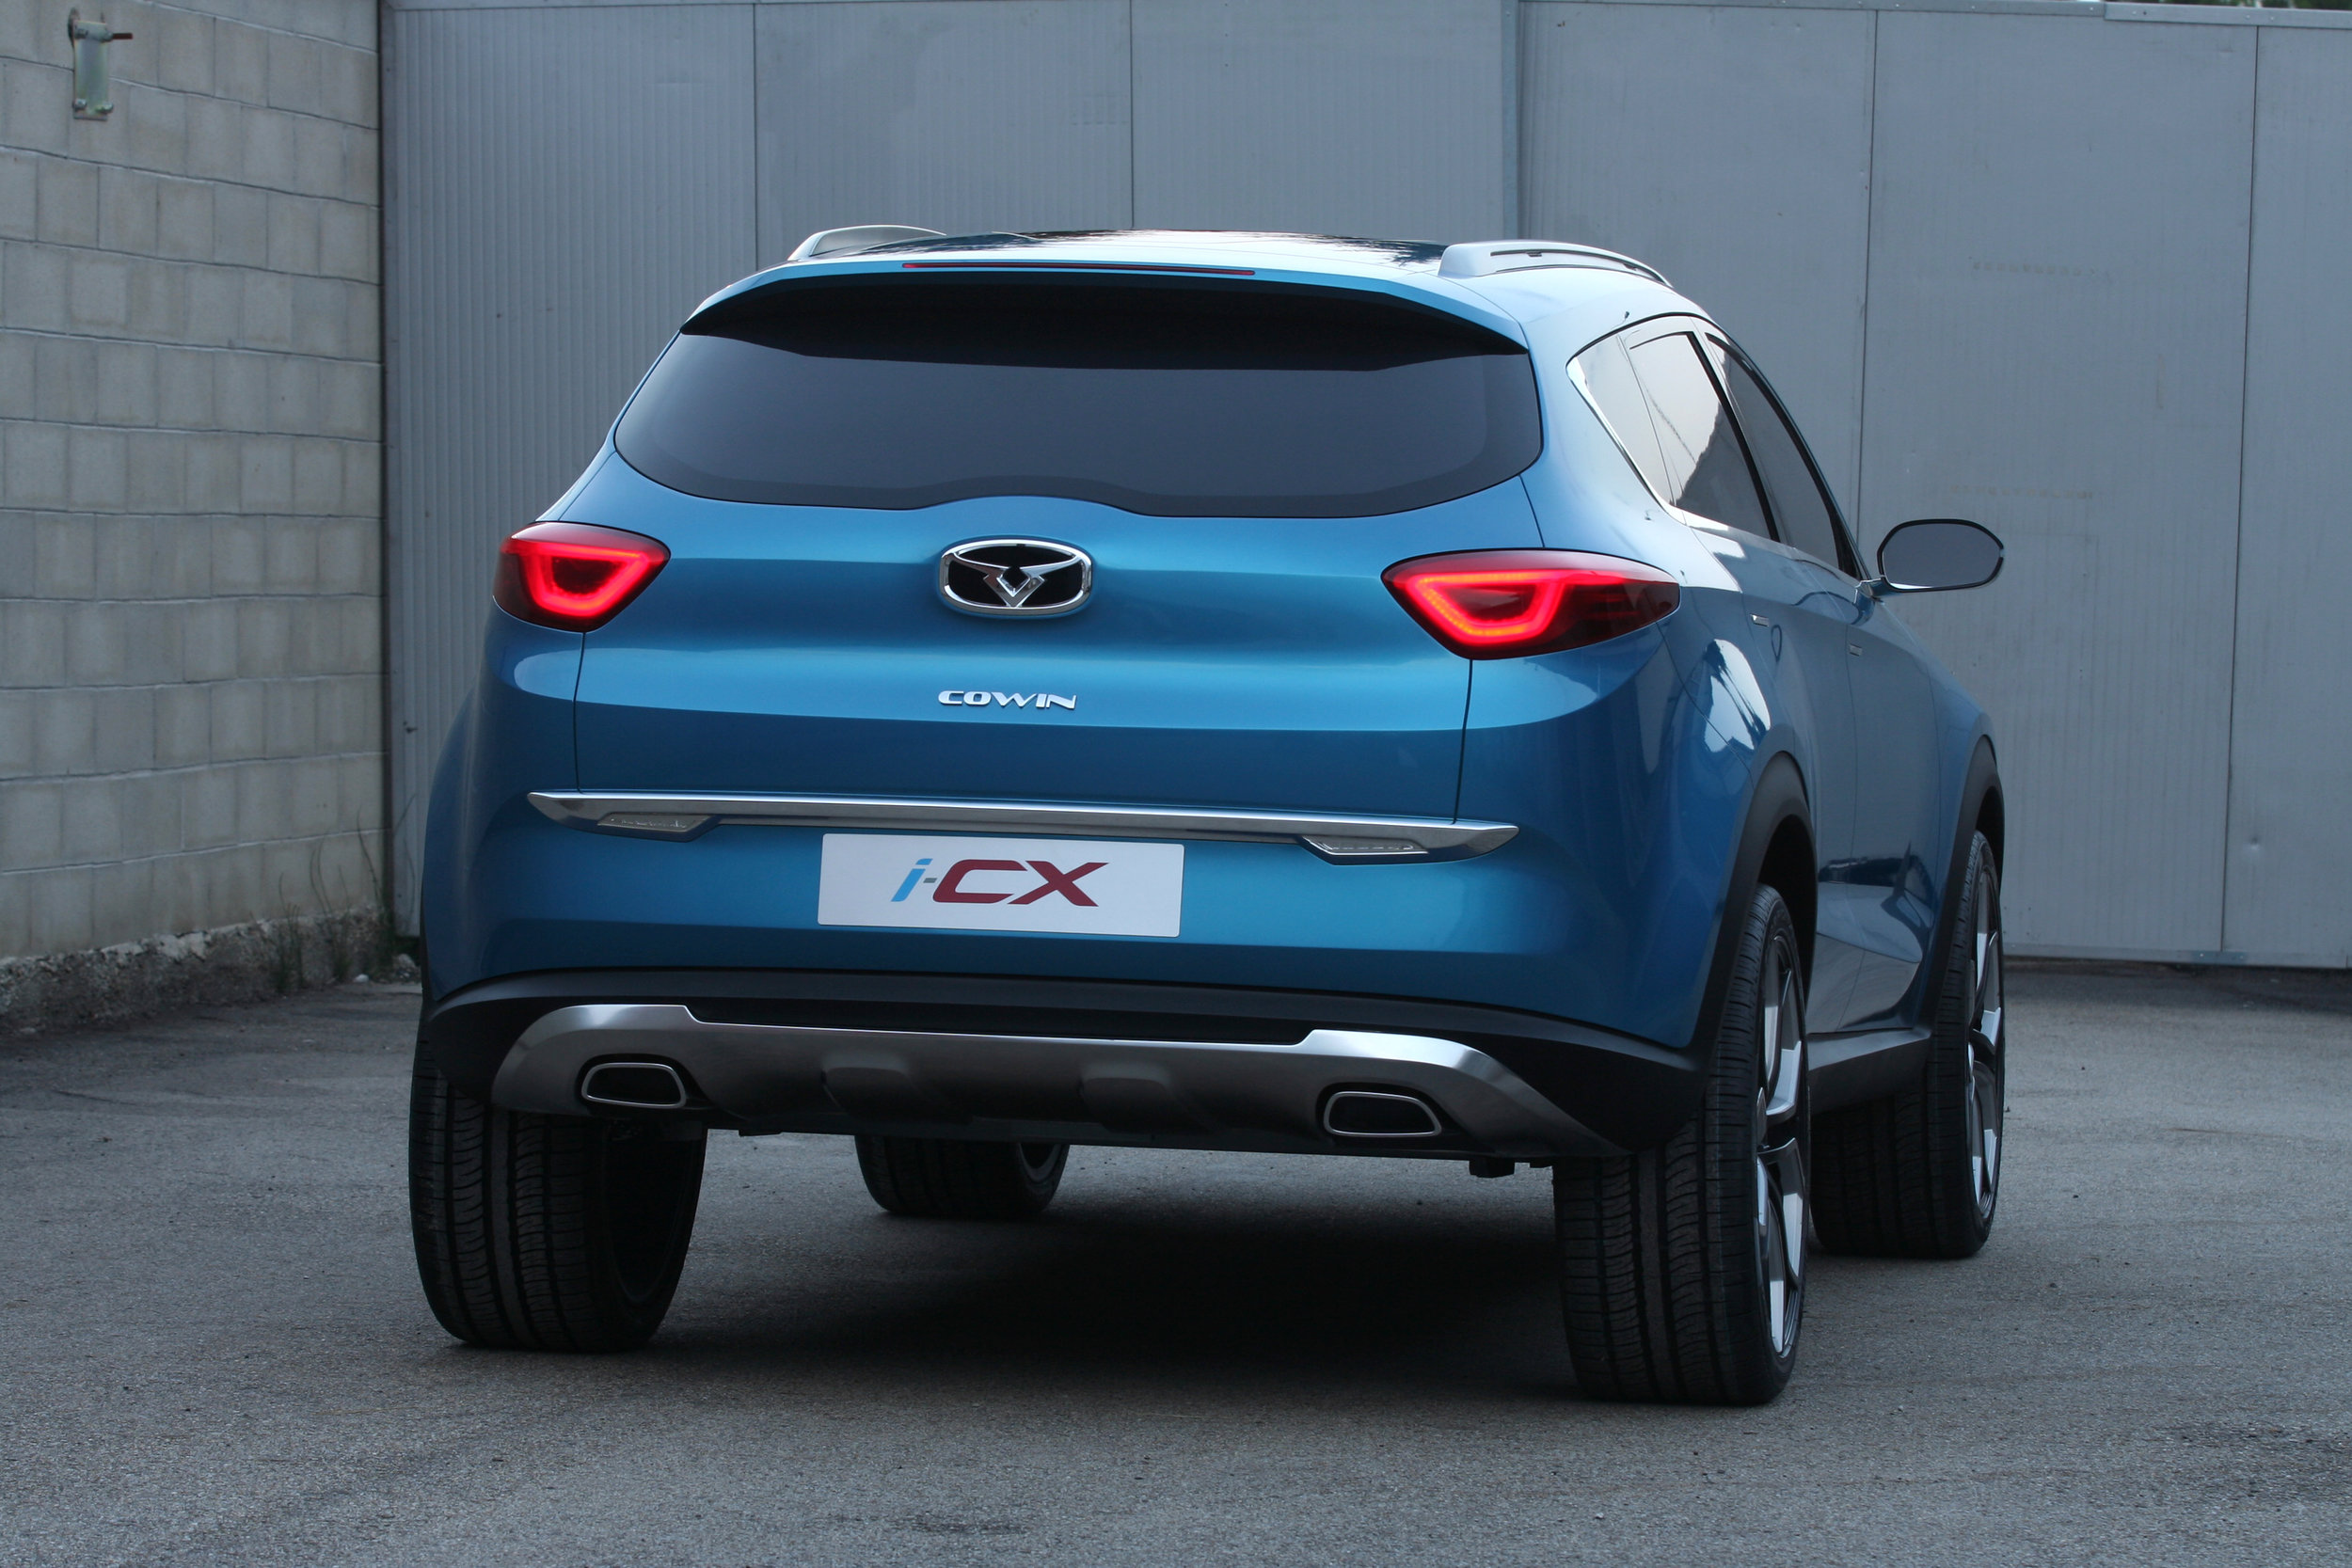 The rear design combines simplicity with proportions that convey muscularity and great stance.